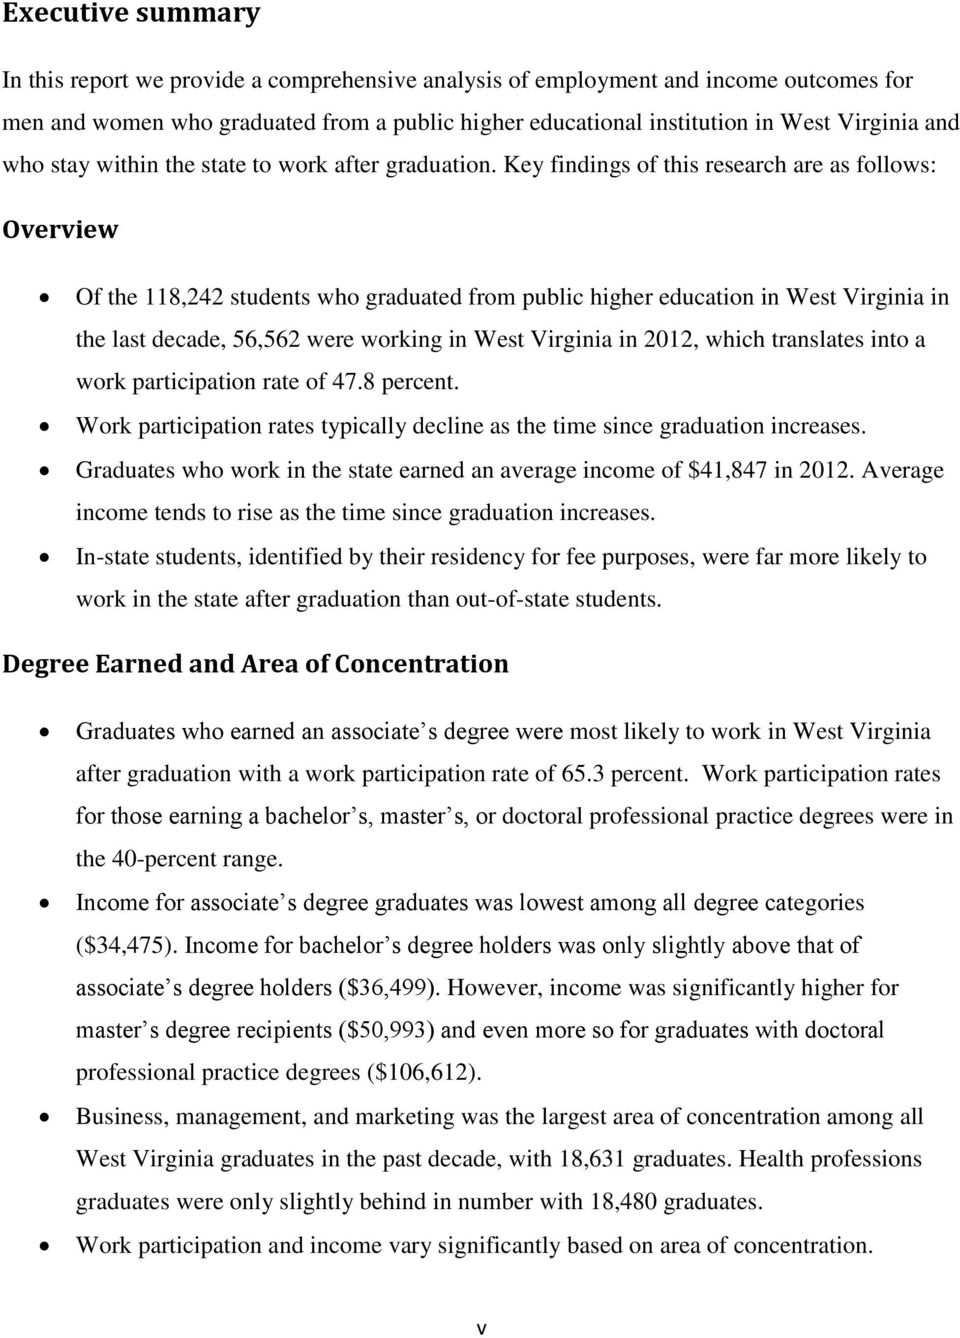 Key findings of this research are as follows: Overview Of the 118,242 students who graduated from public higher education in West Virginia in the last decade, 56,562 were working in West Virginia in